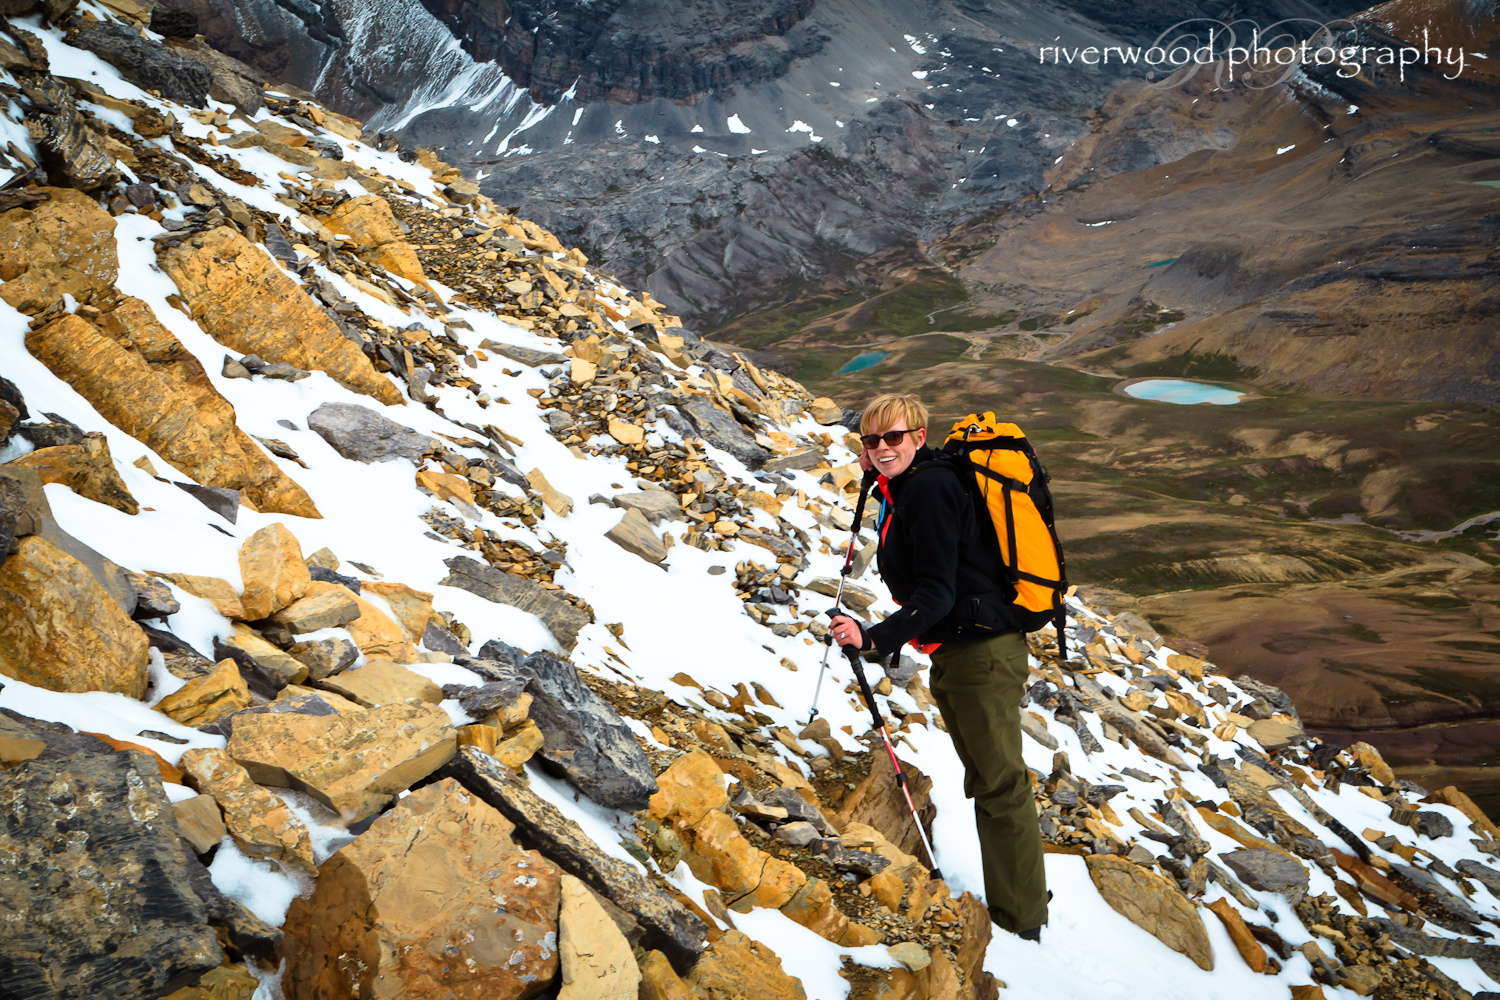 The Final Ascent to Cirque Peak